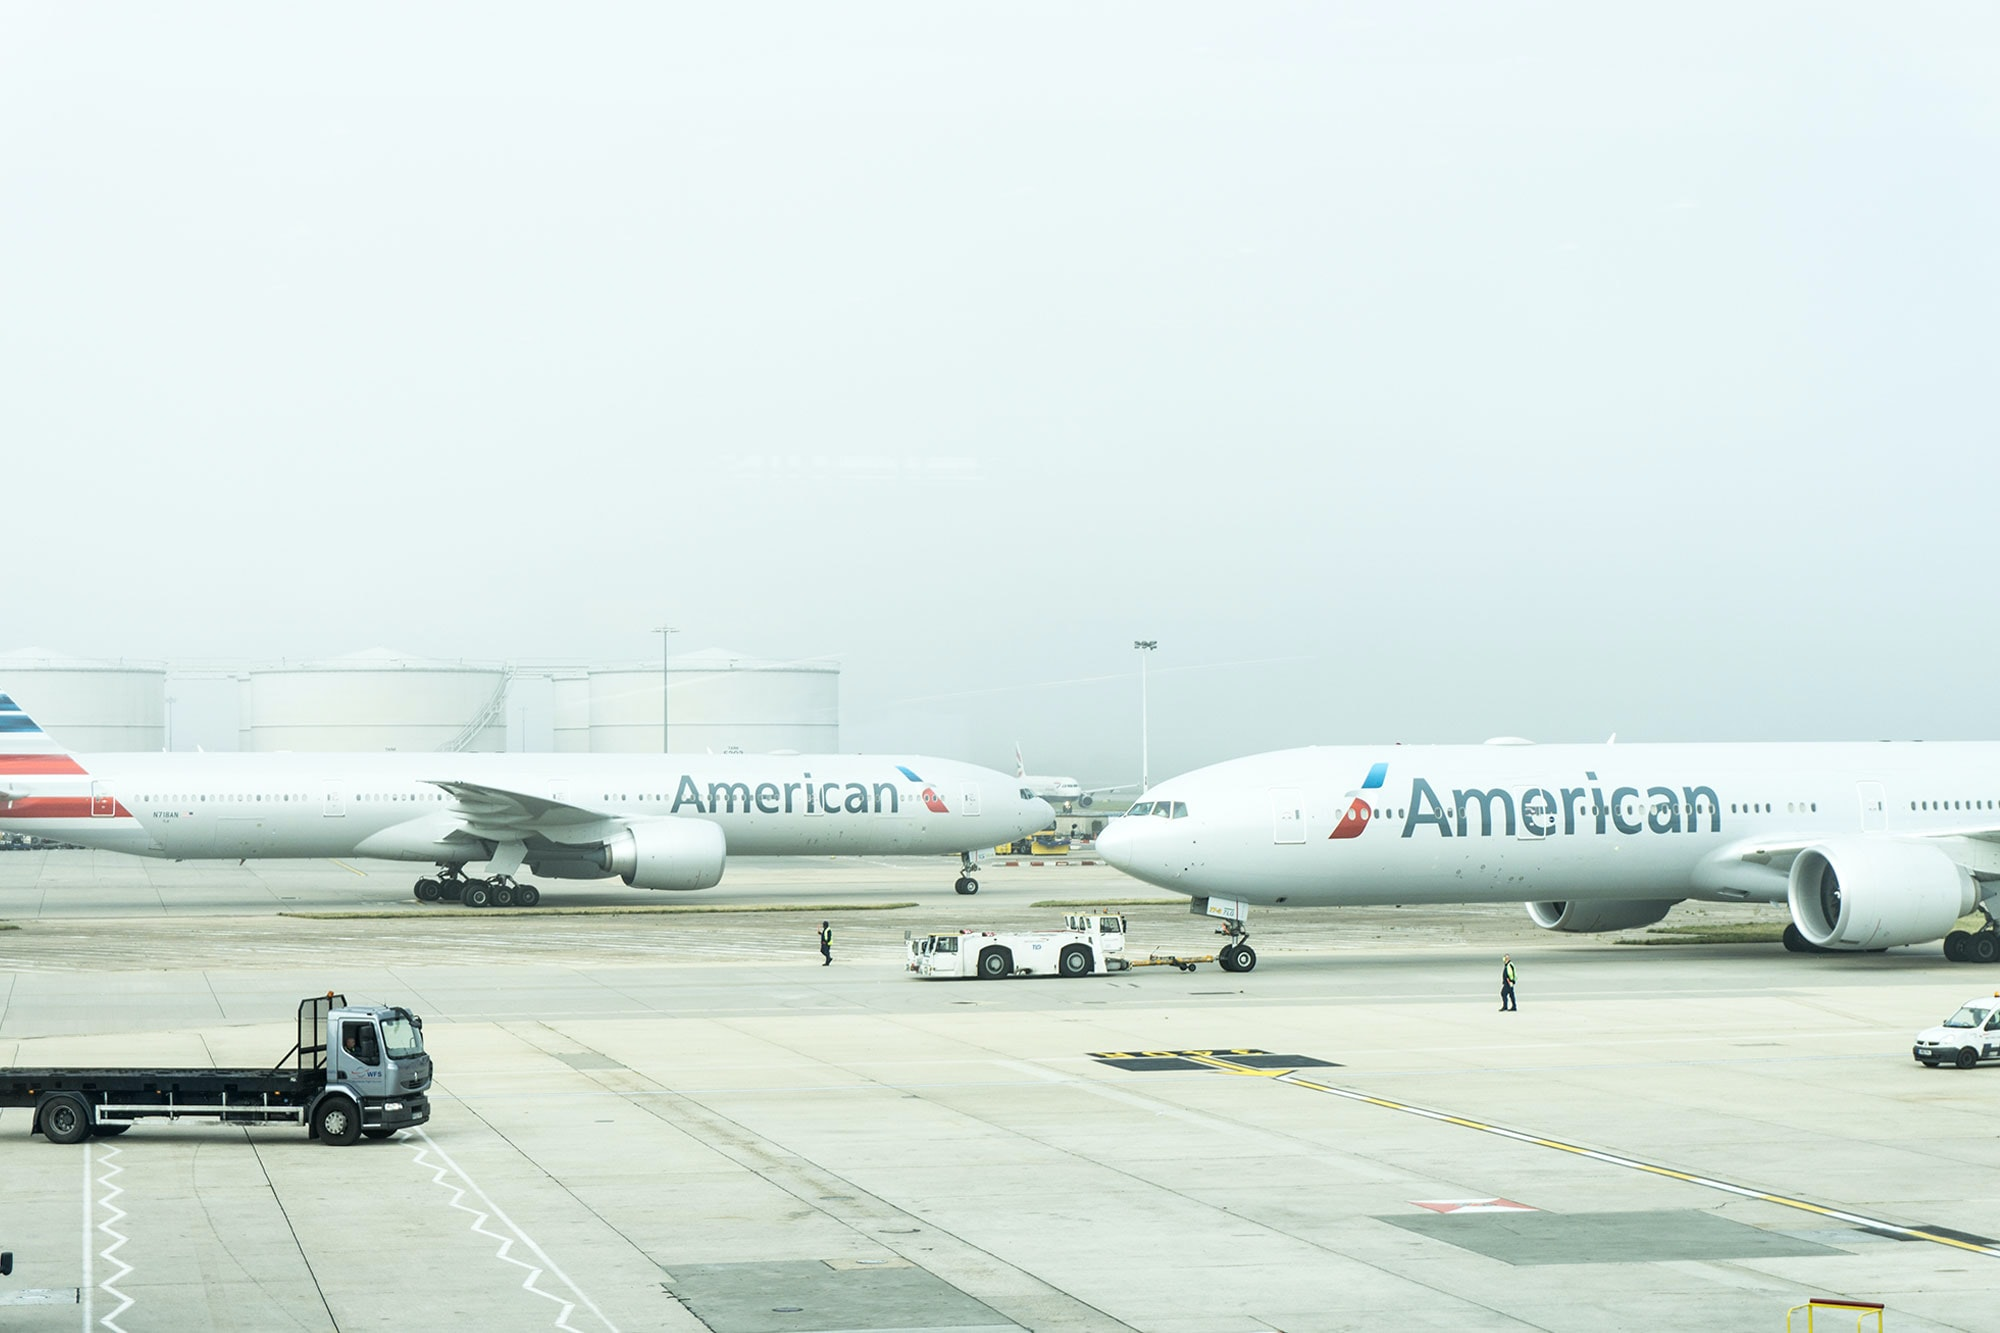 Airport runway with American Airline airplanes and airport vehicles